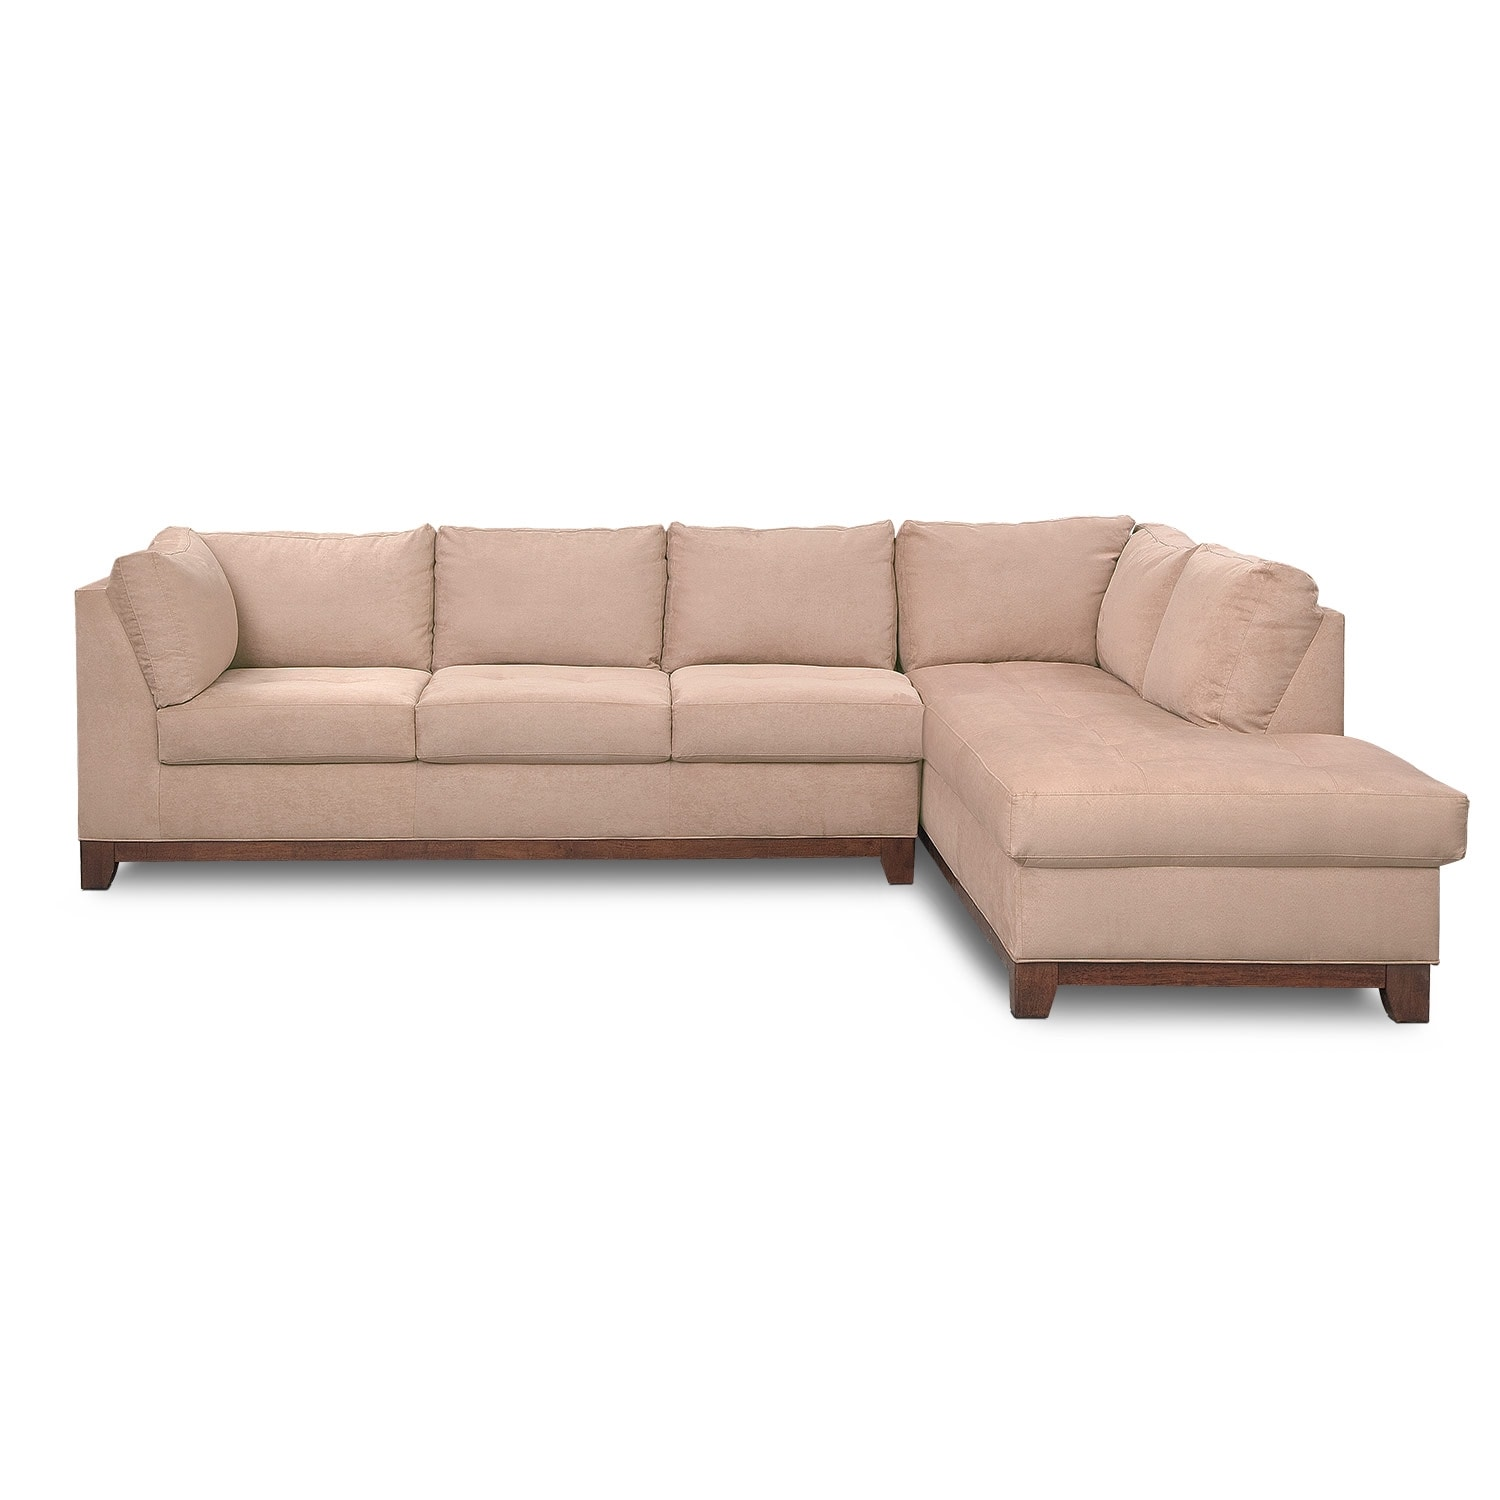 Soho ii 2 pc sectional value city furniture for Sectional furniture